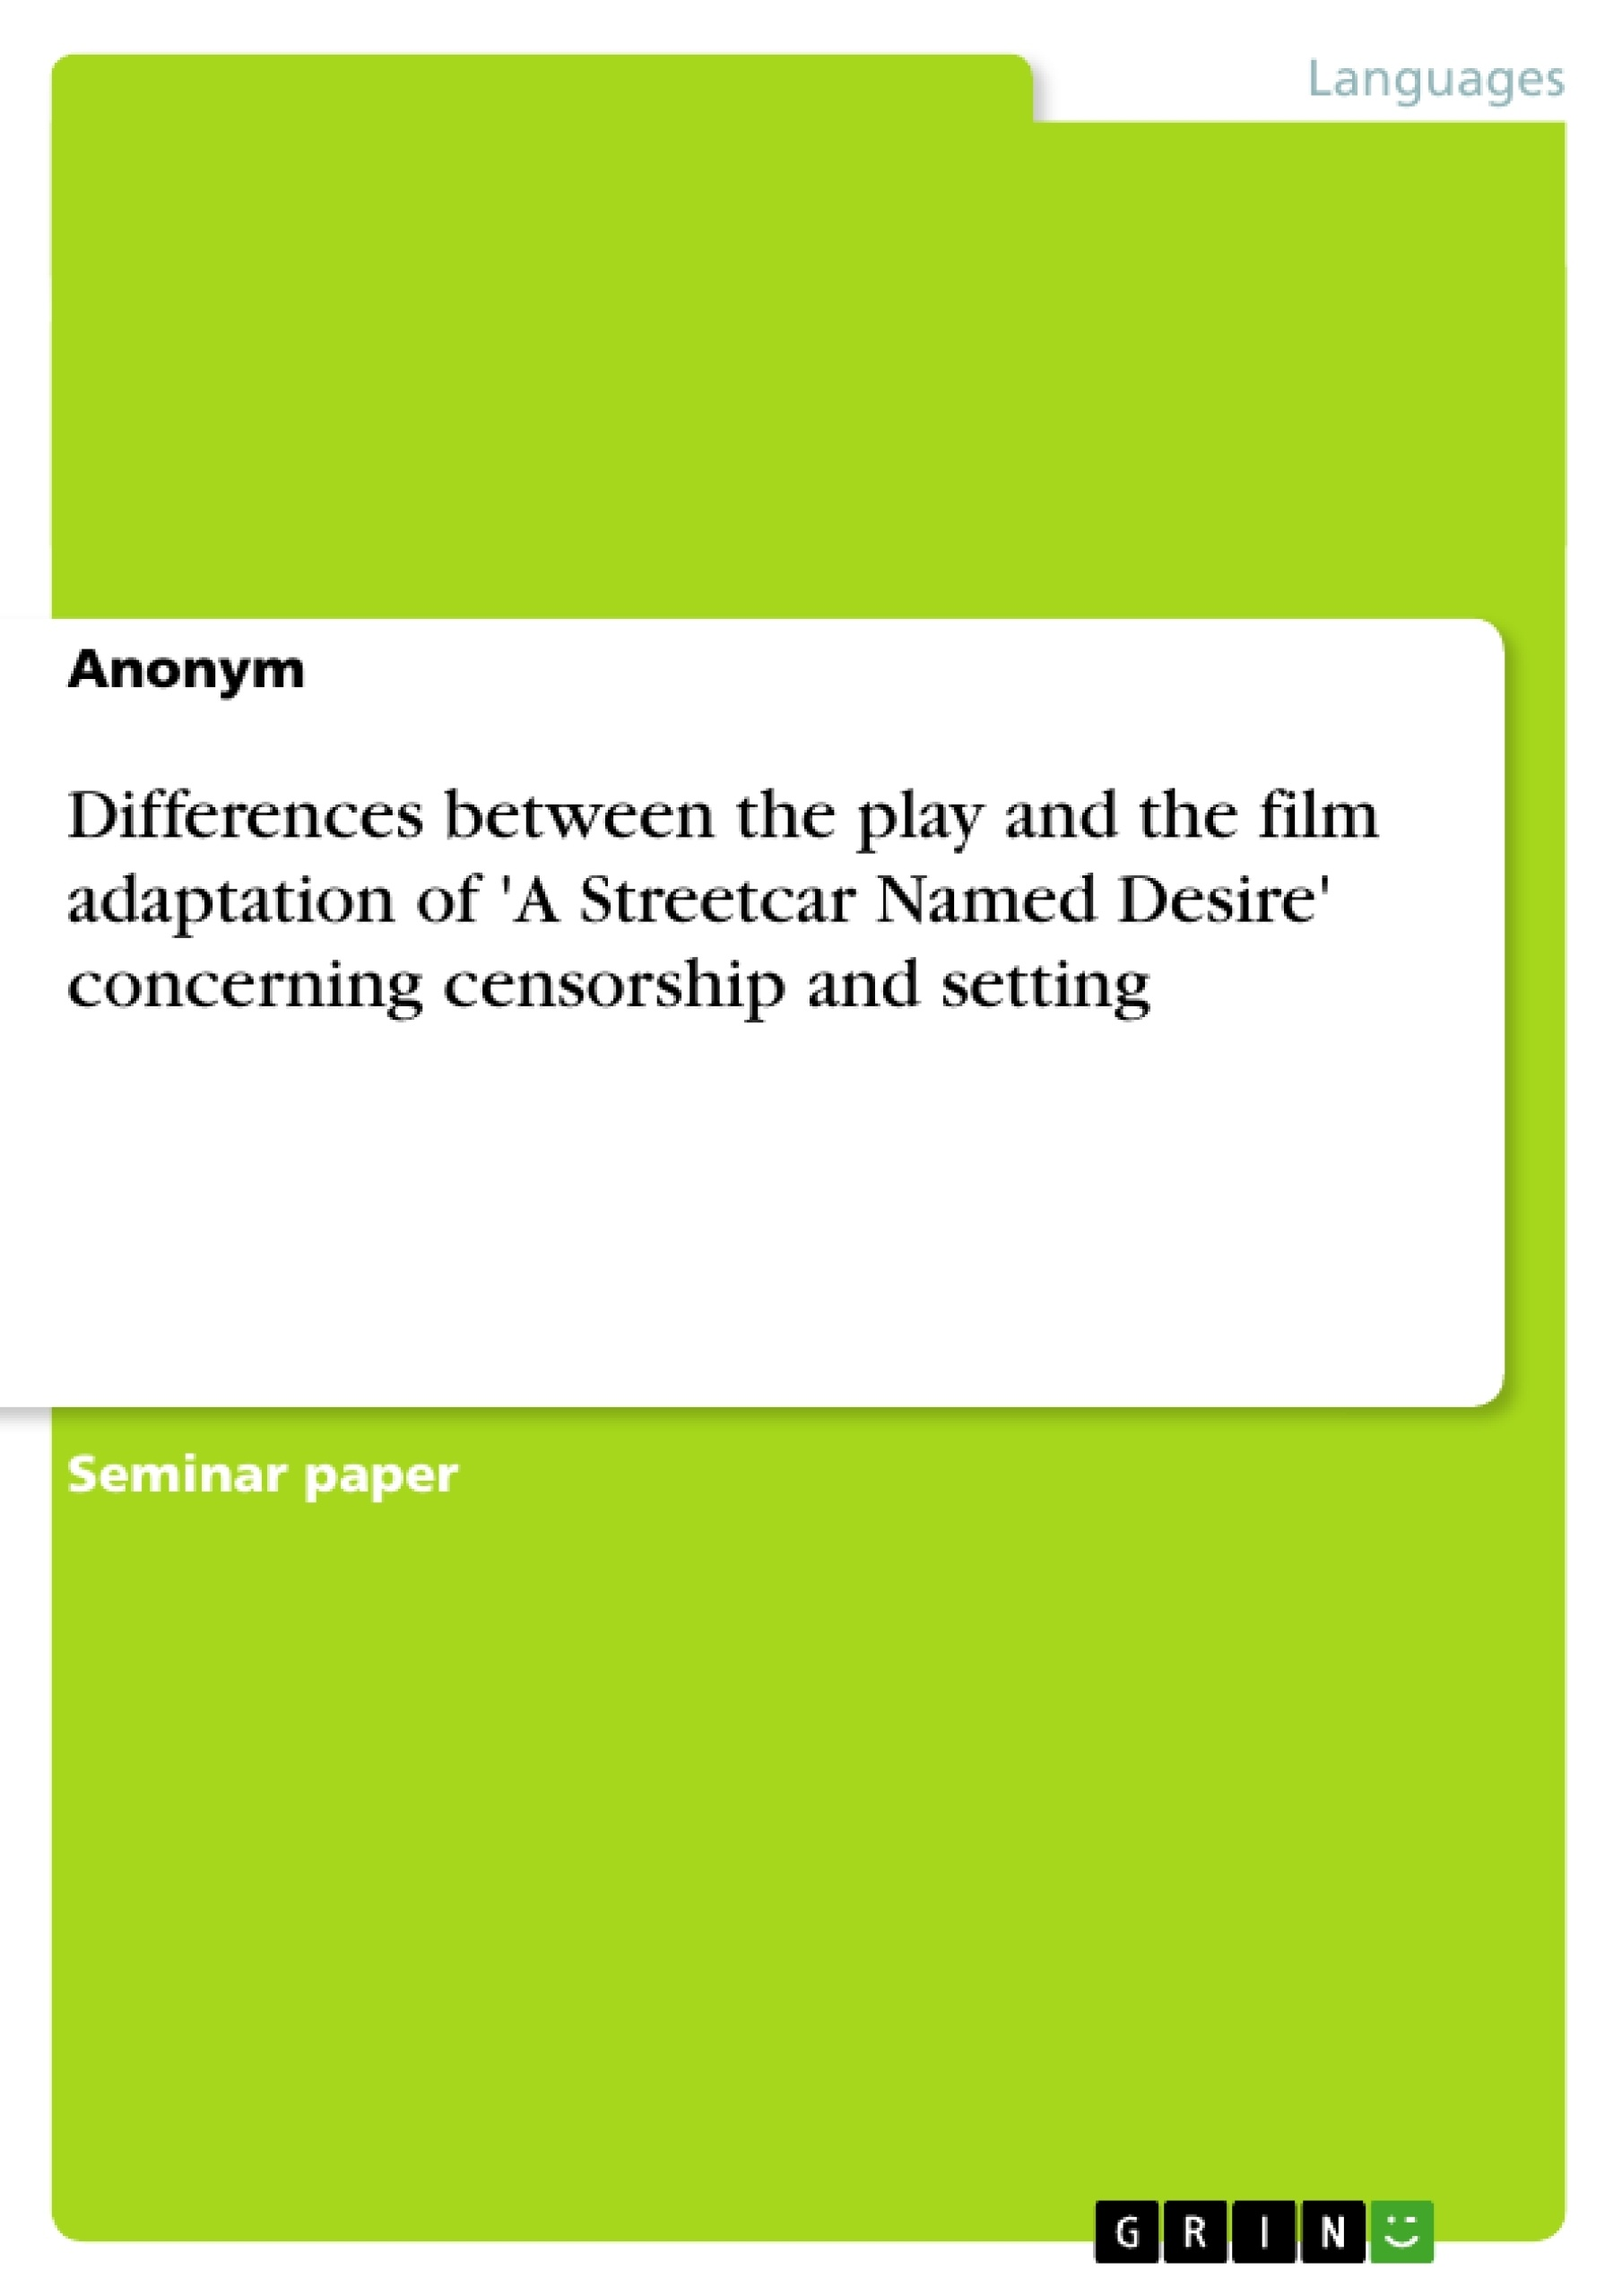 Title: Differences between the play and the film adaptation of 'A Streetcar Named Desire' concerning censorship and setting